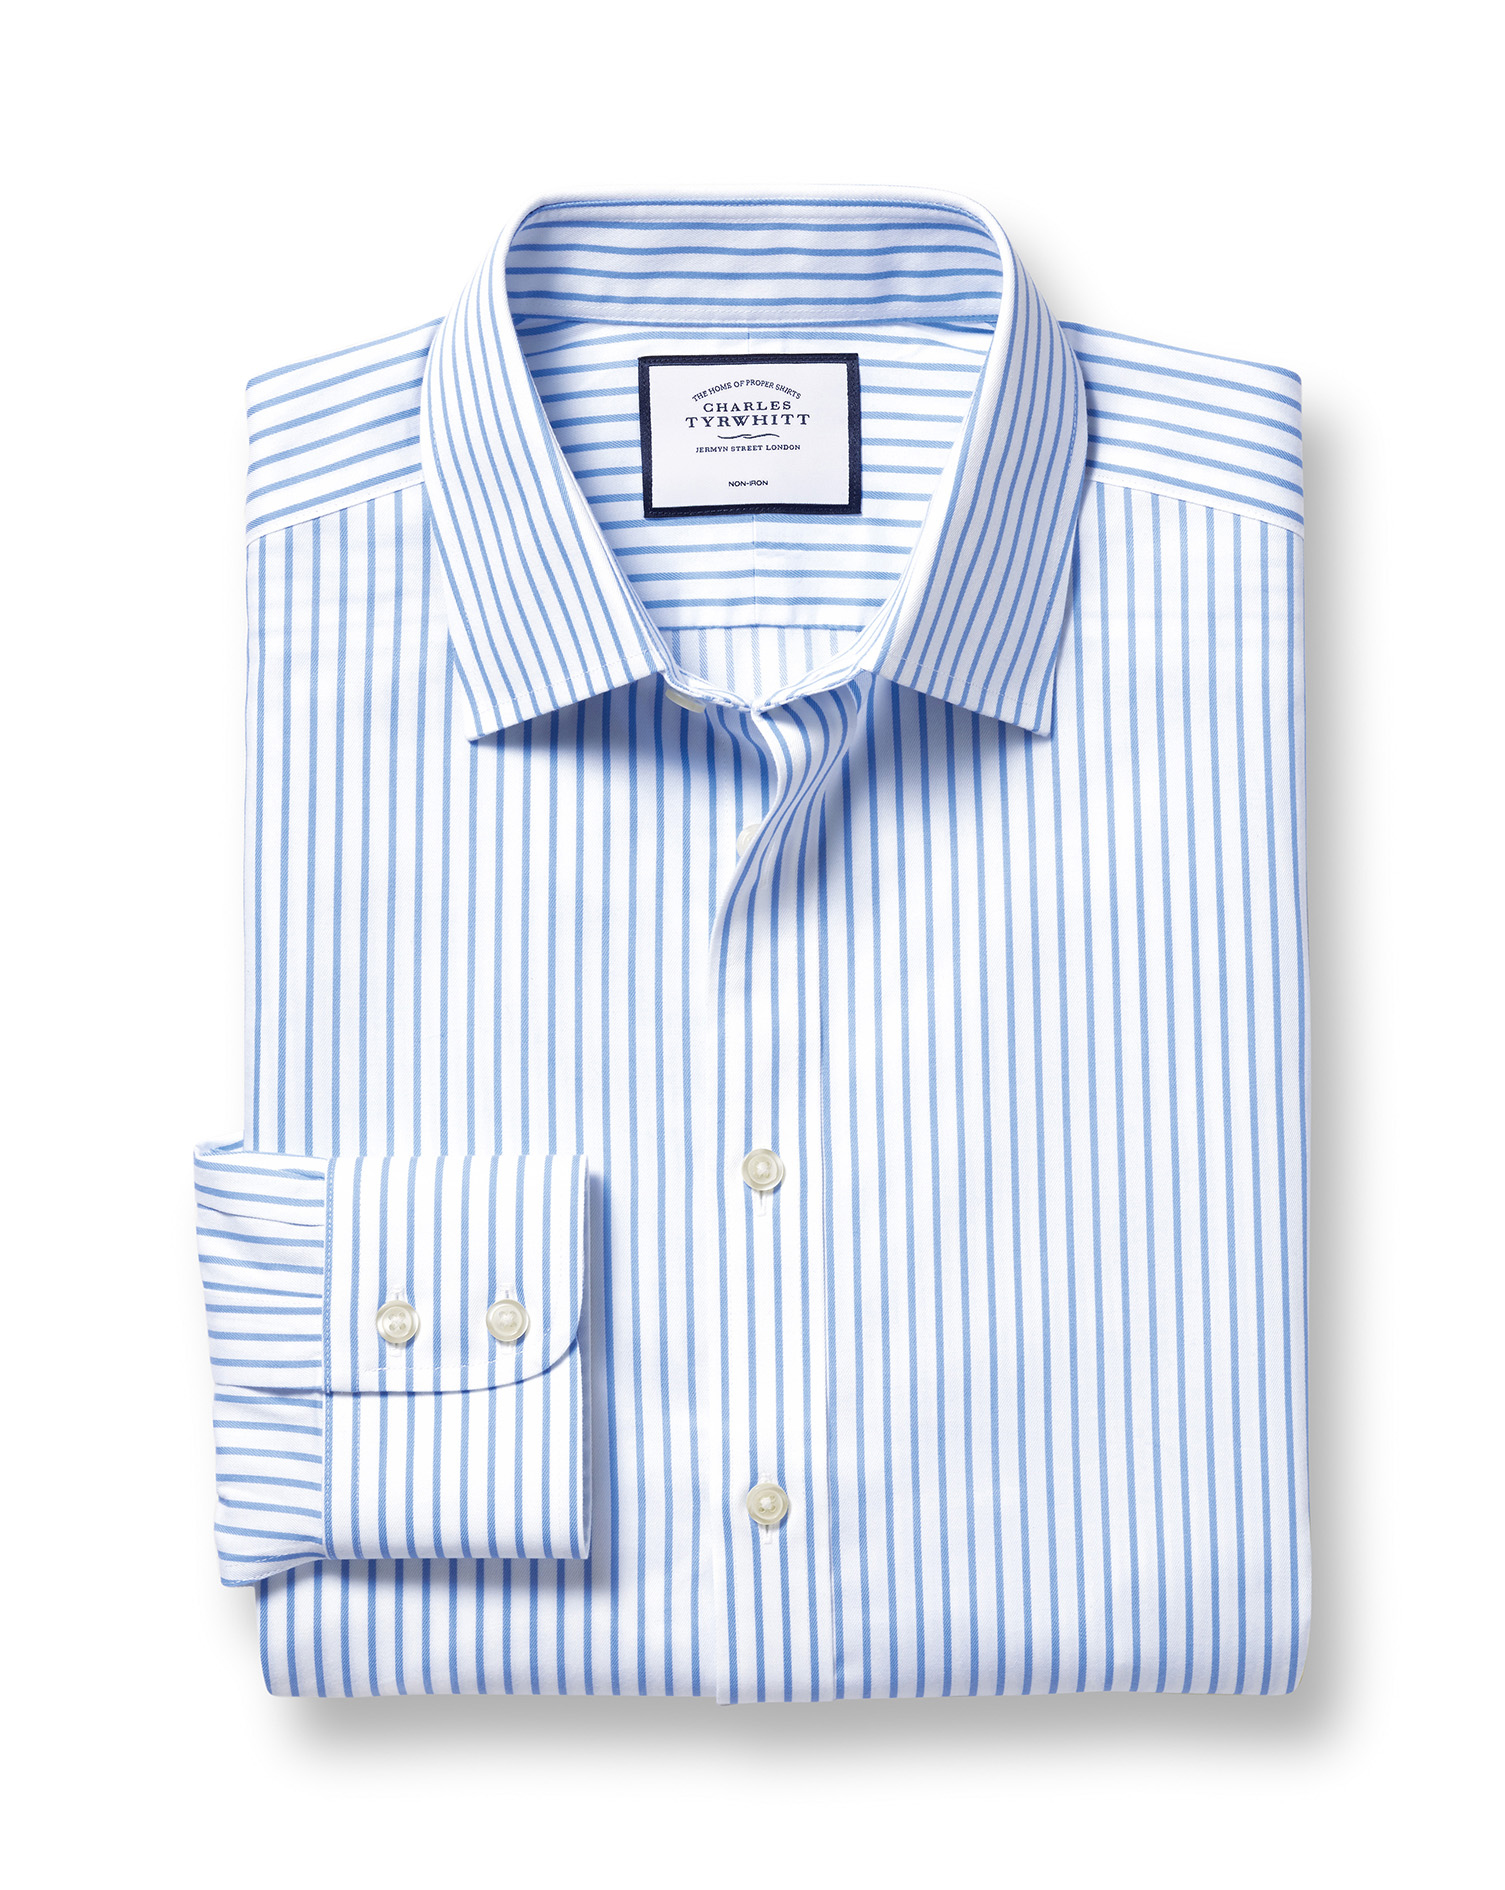 Classic Fit Non-Iron Twill White and Sky Blue Stripe Cotton Formal Shirt Double Cuff Size 16.5/34 by